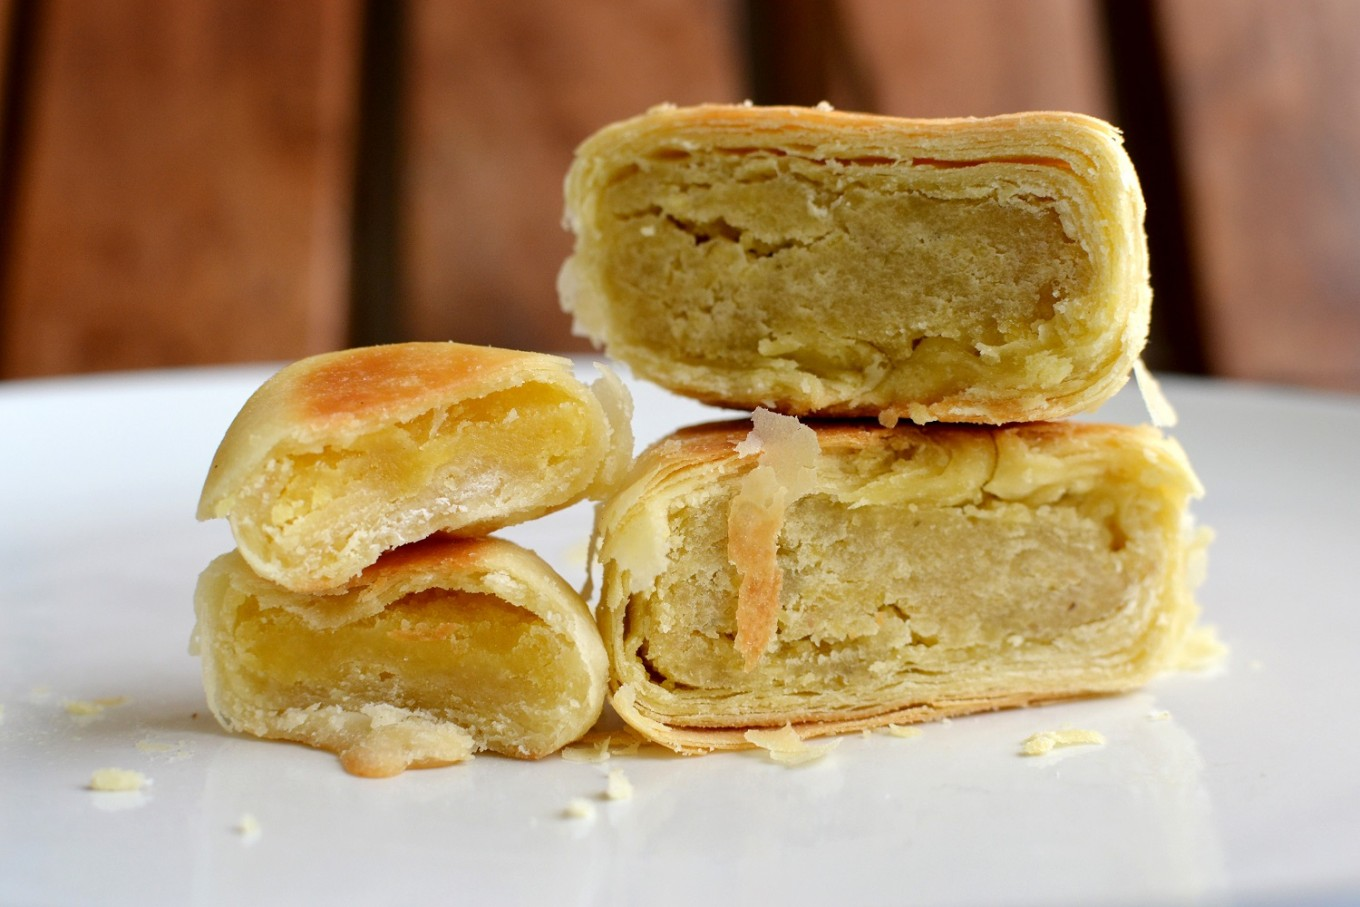 Yogyakarta-style bakpia has thicker and chewier dough. Meanwhile, Surakarta-style bakpia has a flaky texture and ischock-full of filling.